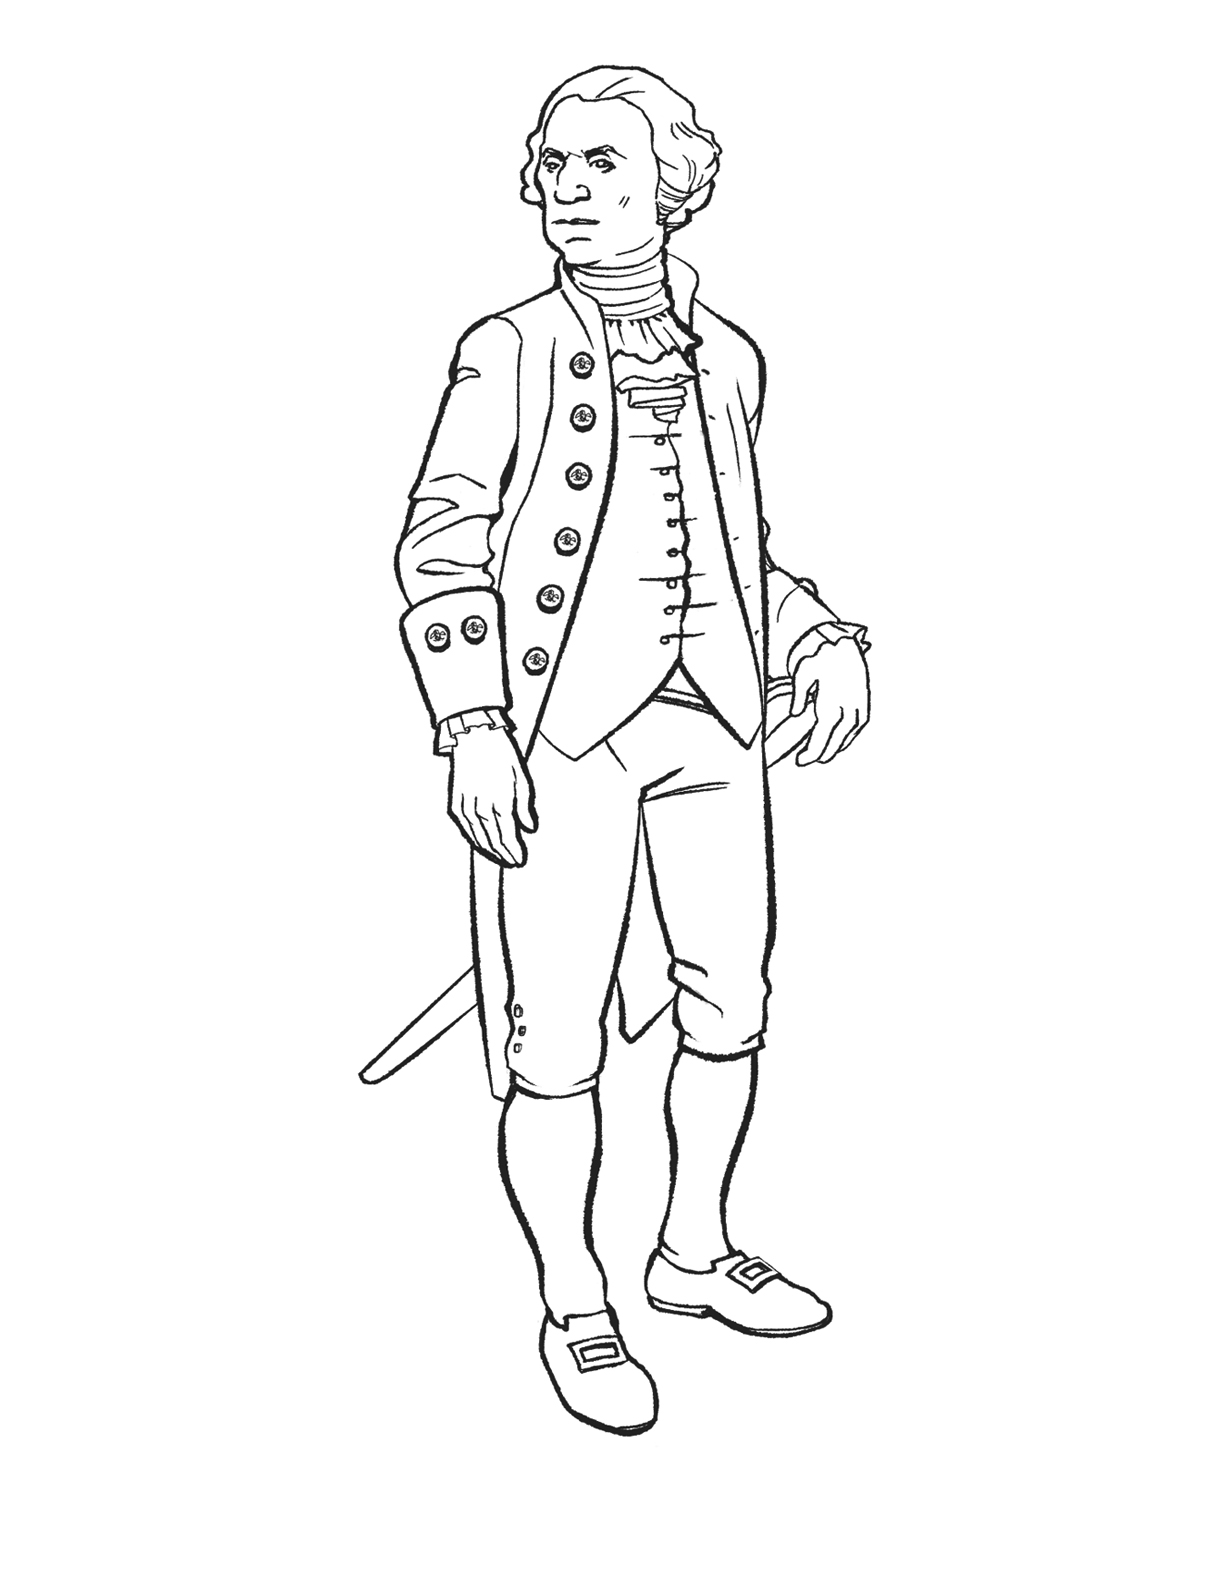 anauguration coloring pages - photo#42